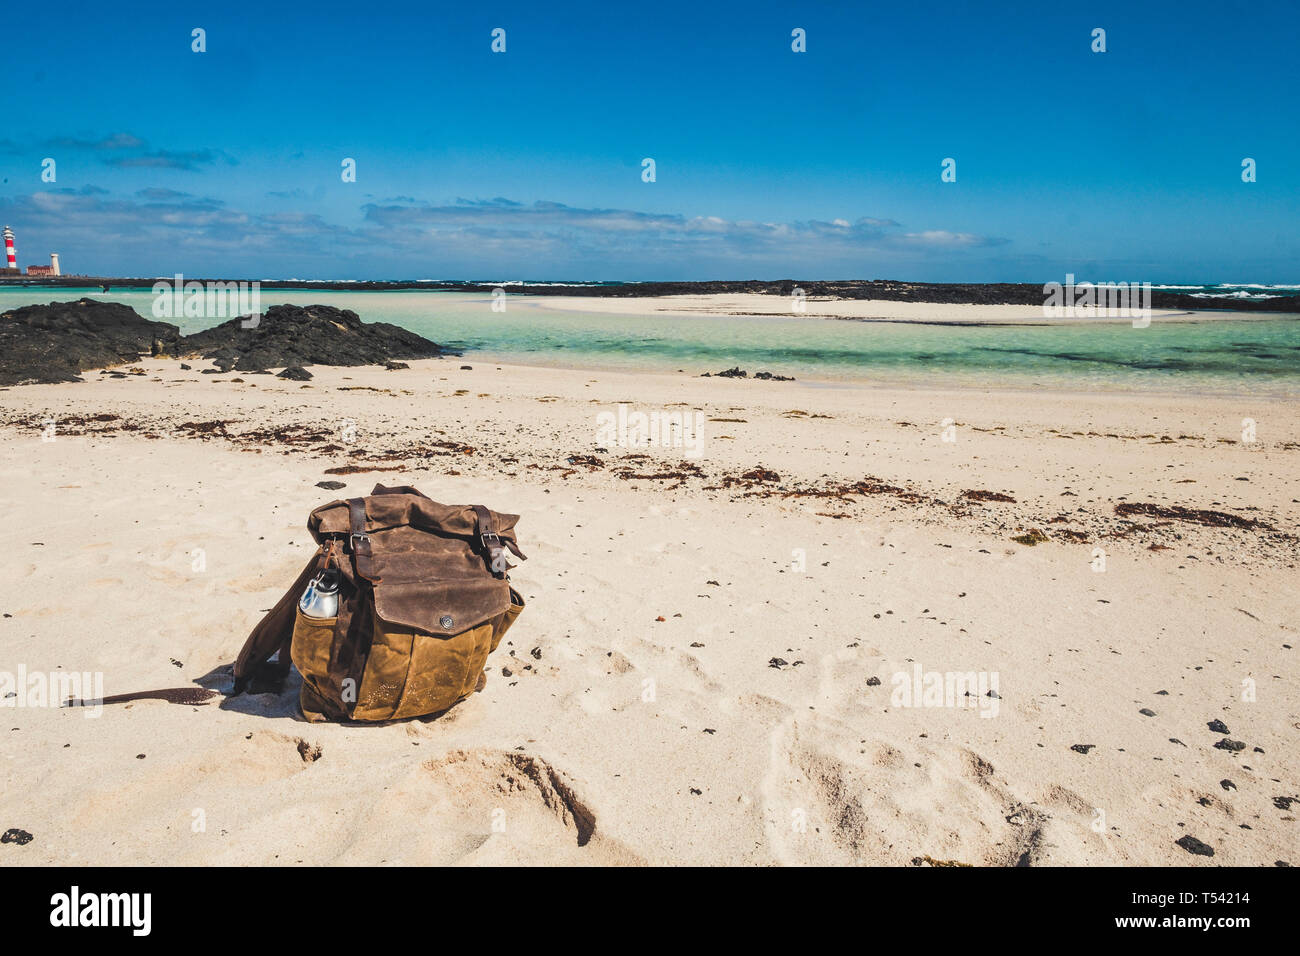 Vintage beautiful leather backpack at the beach for travel summer holiday vacation concept - tropical sand and blue background Stock Photo